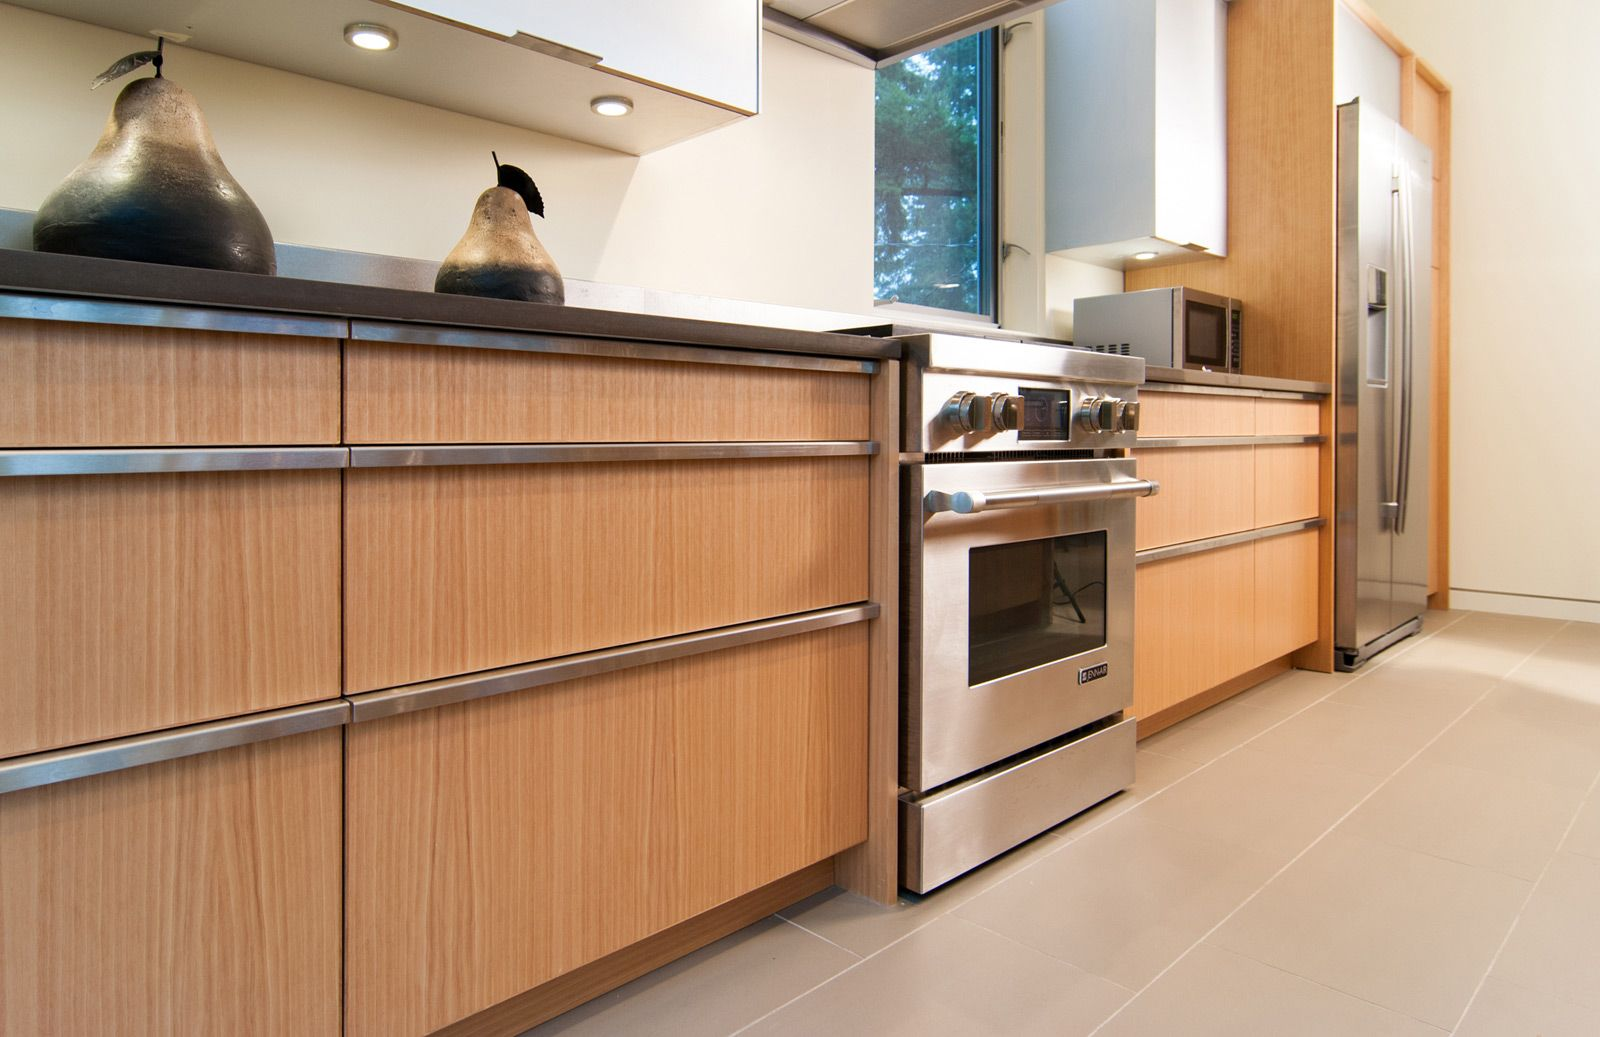 modern birch kitchen cabinets - Google Search - Note that the ...